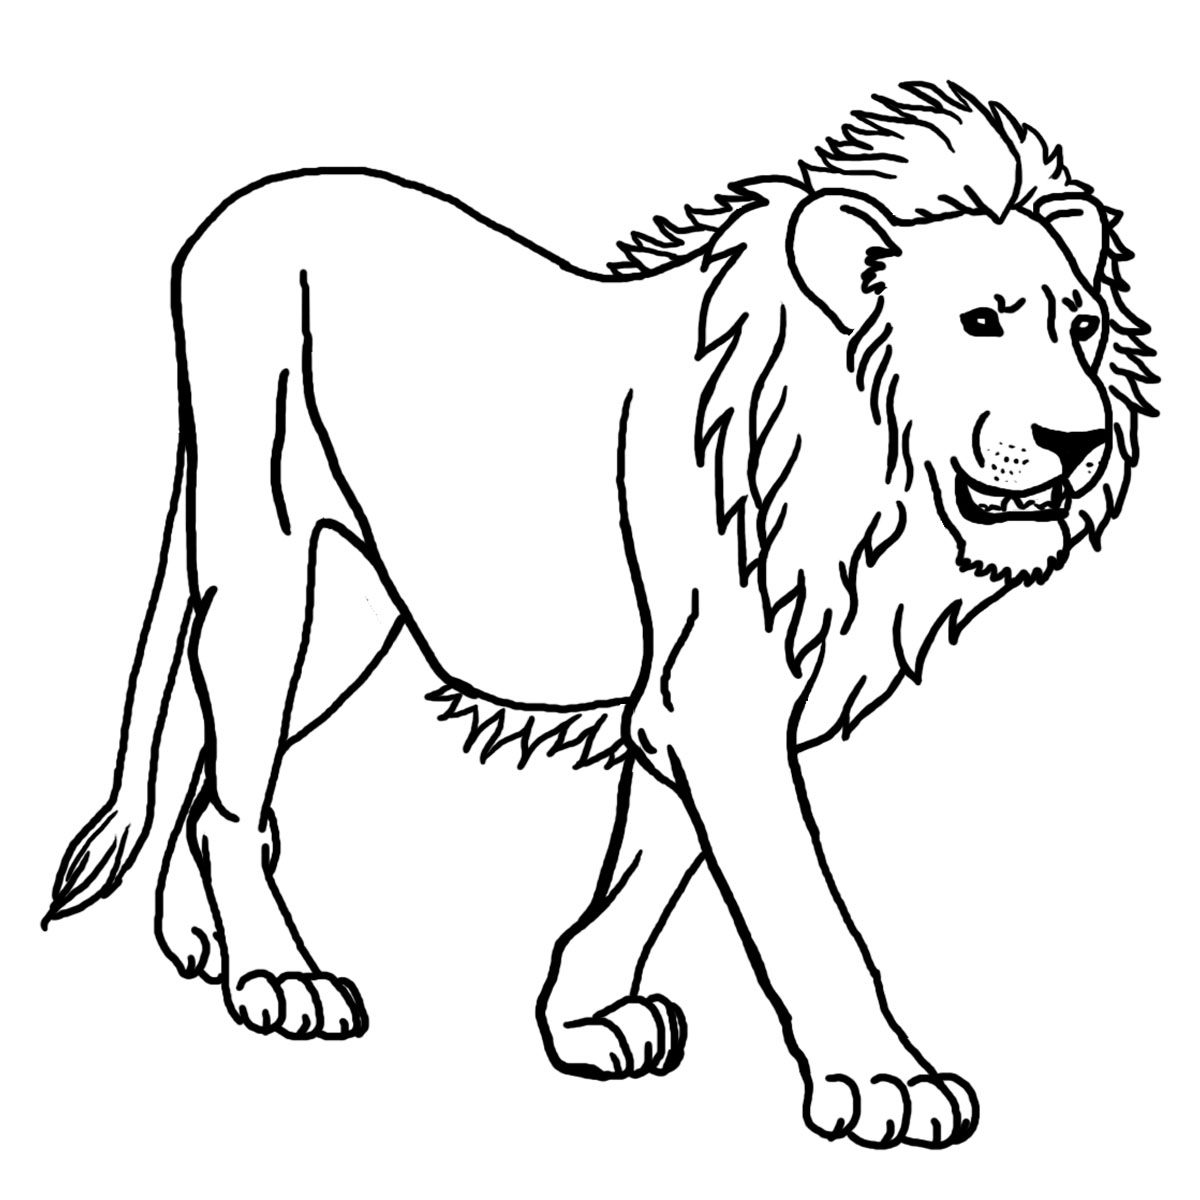 Lion Clipart Black And White-Lion Clipart Black and White-13